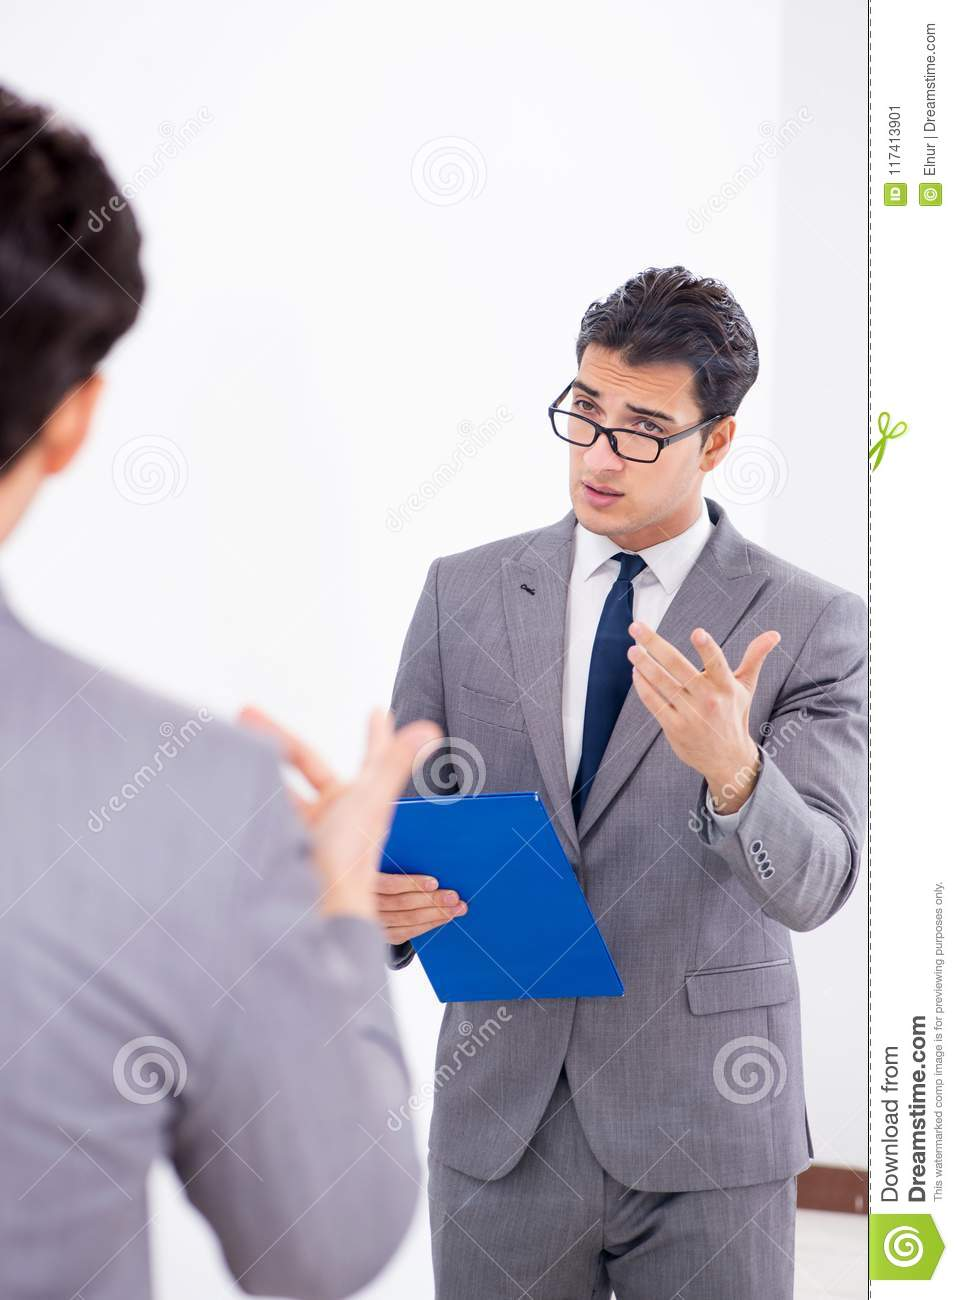 The politician planning speach in front of mirror